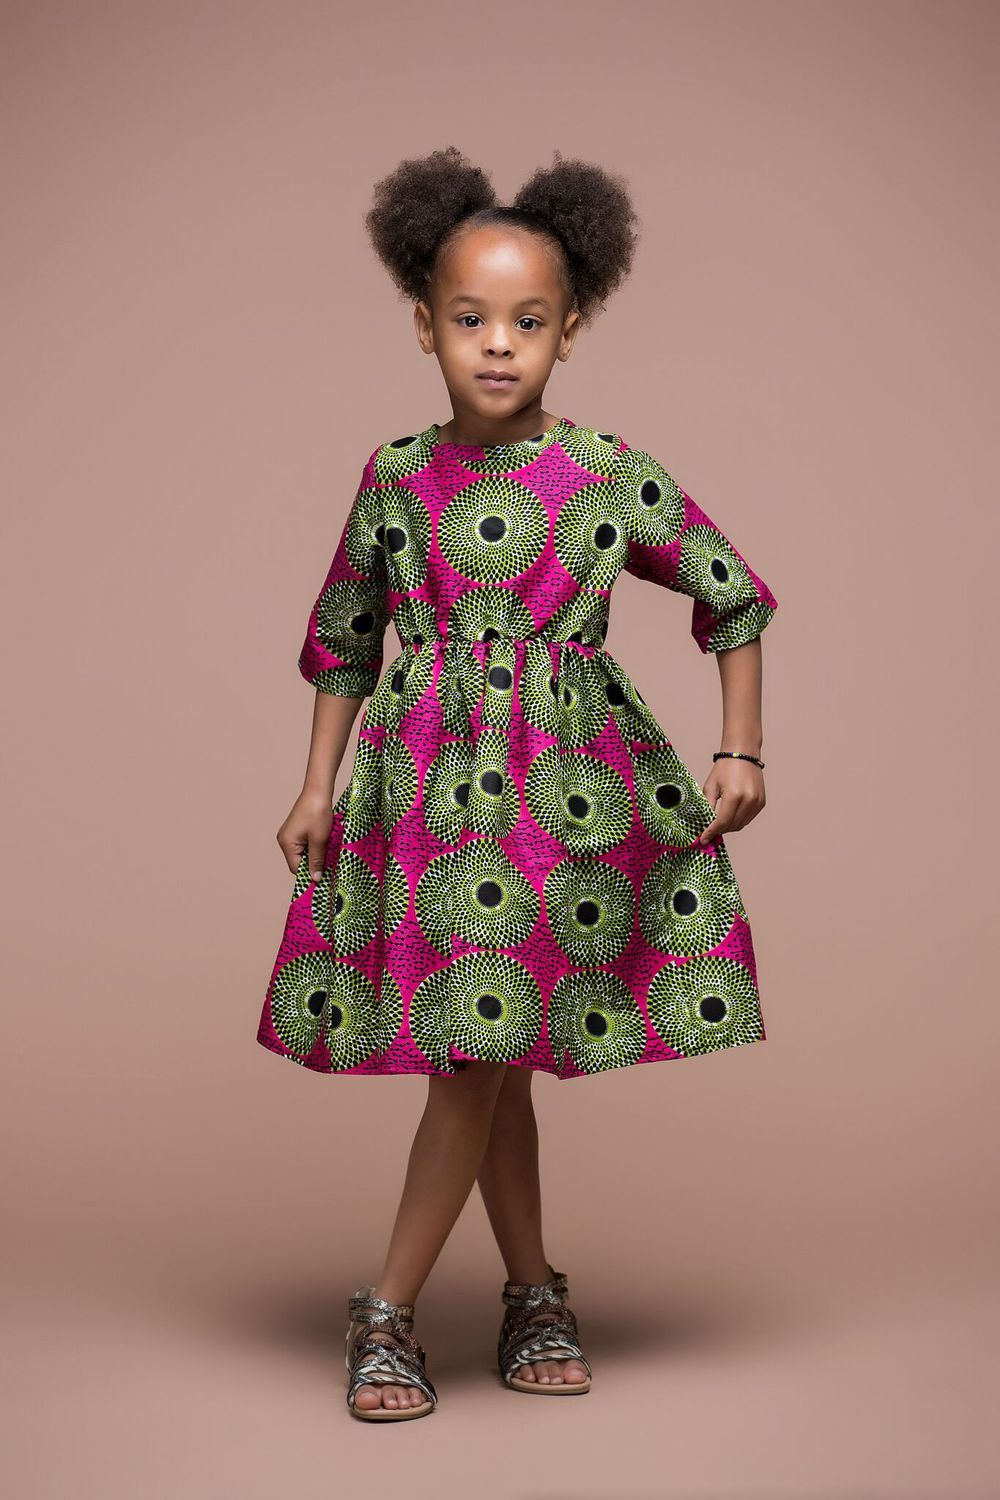 Kids Outfits Clothes Fashion: African Print Gonos Kid's Dress